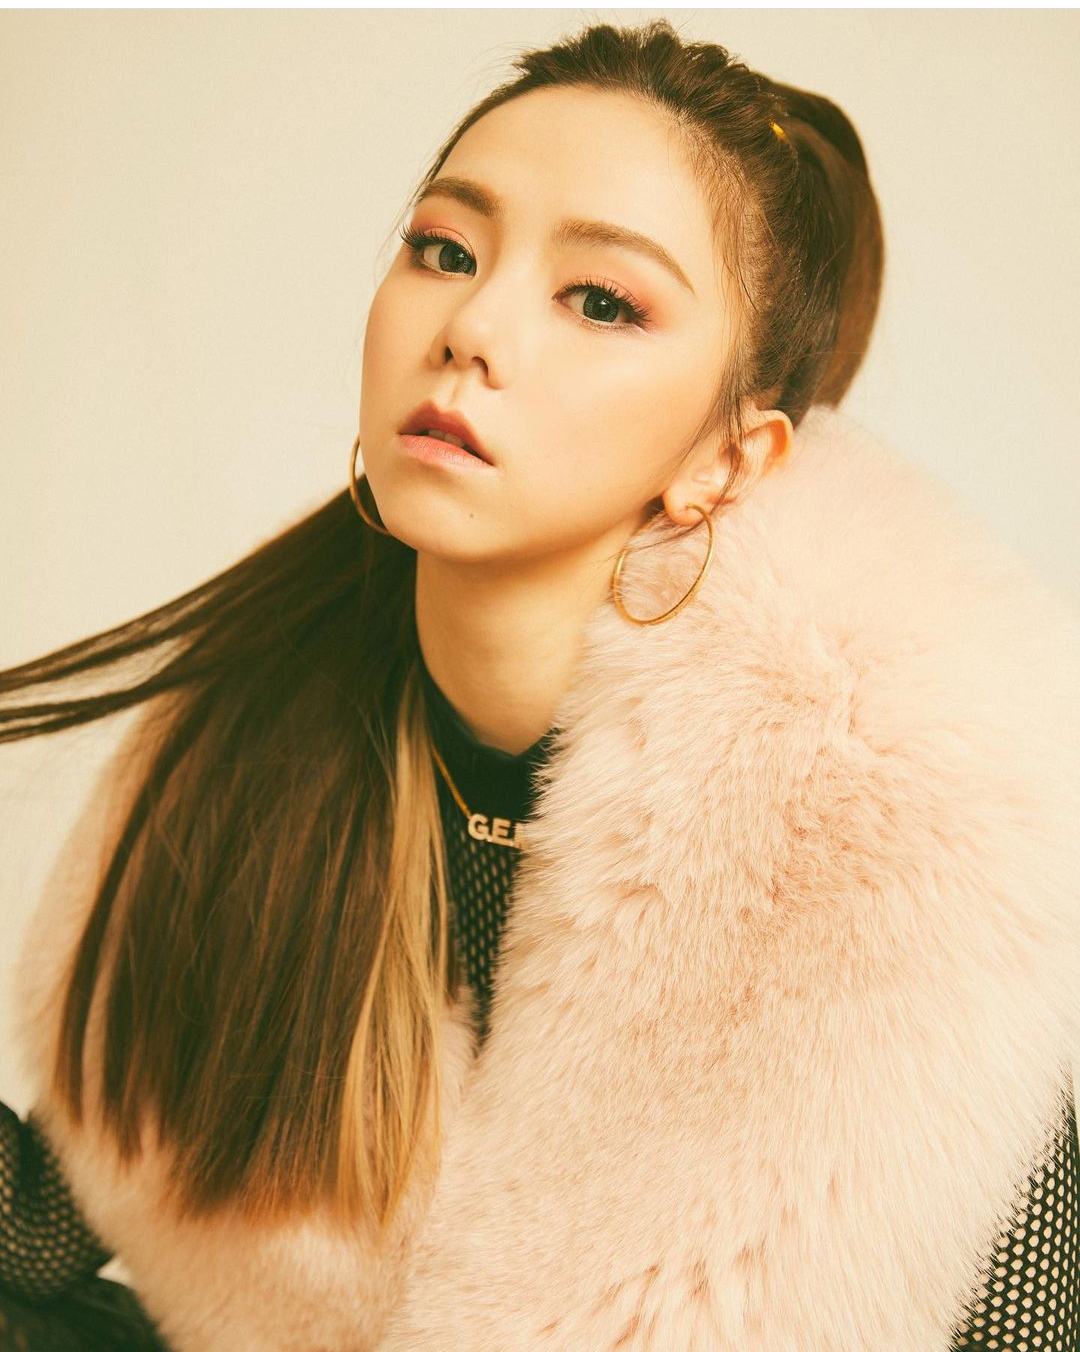 G.E.M And Her Boyfriend Accused Of Mistreating Their Staff